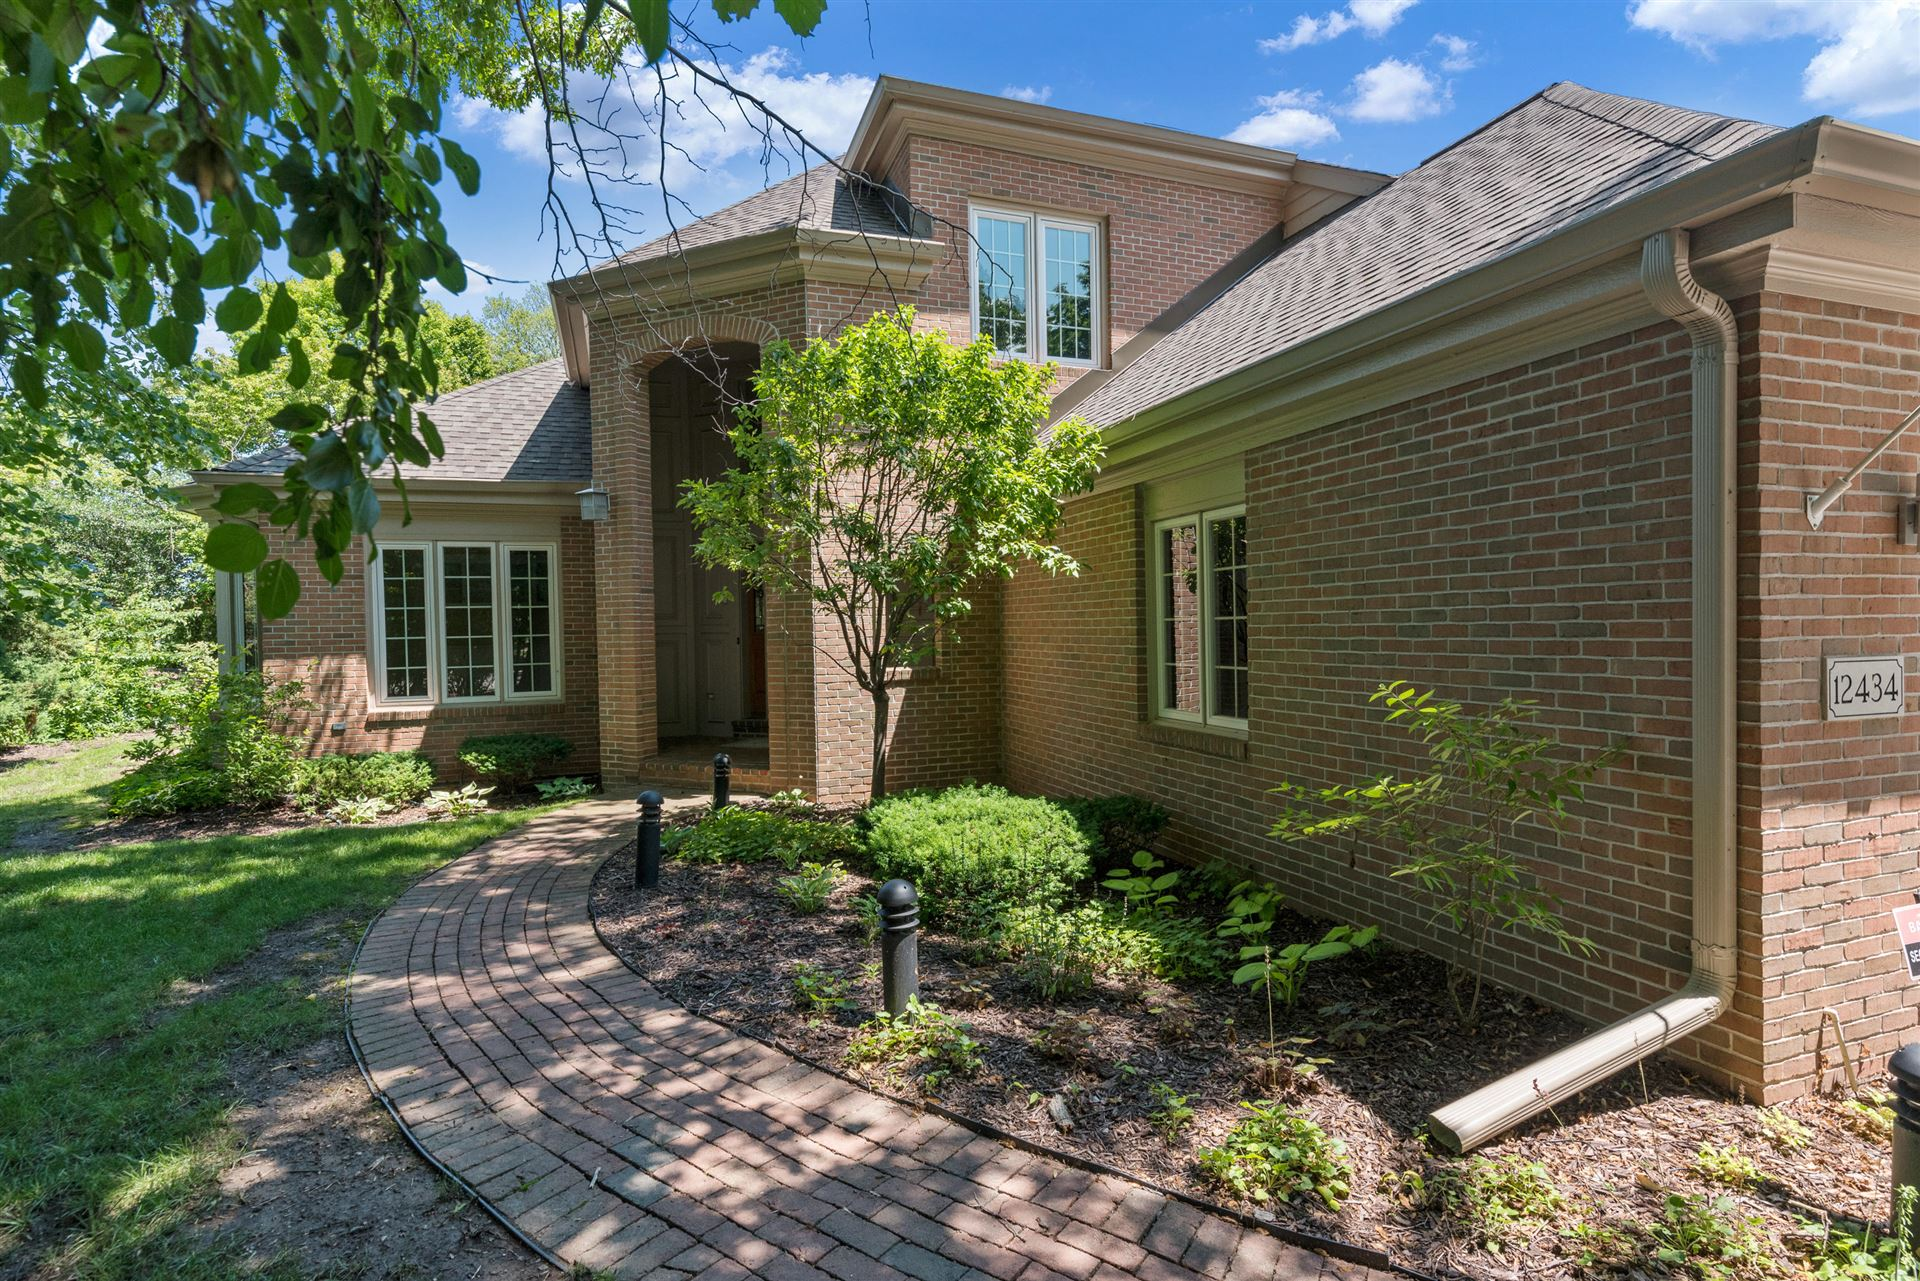 12434 N Golf Dr, Mequon, WI 53092 - #: 1750306